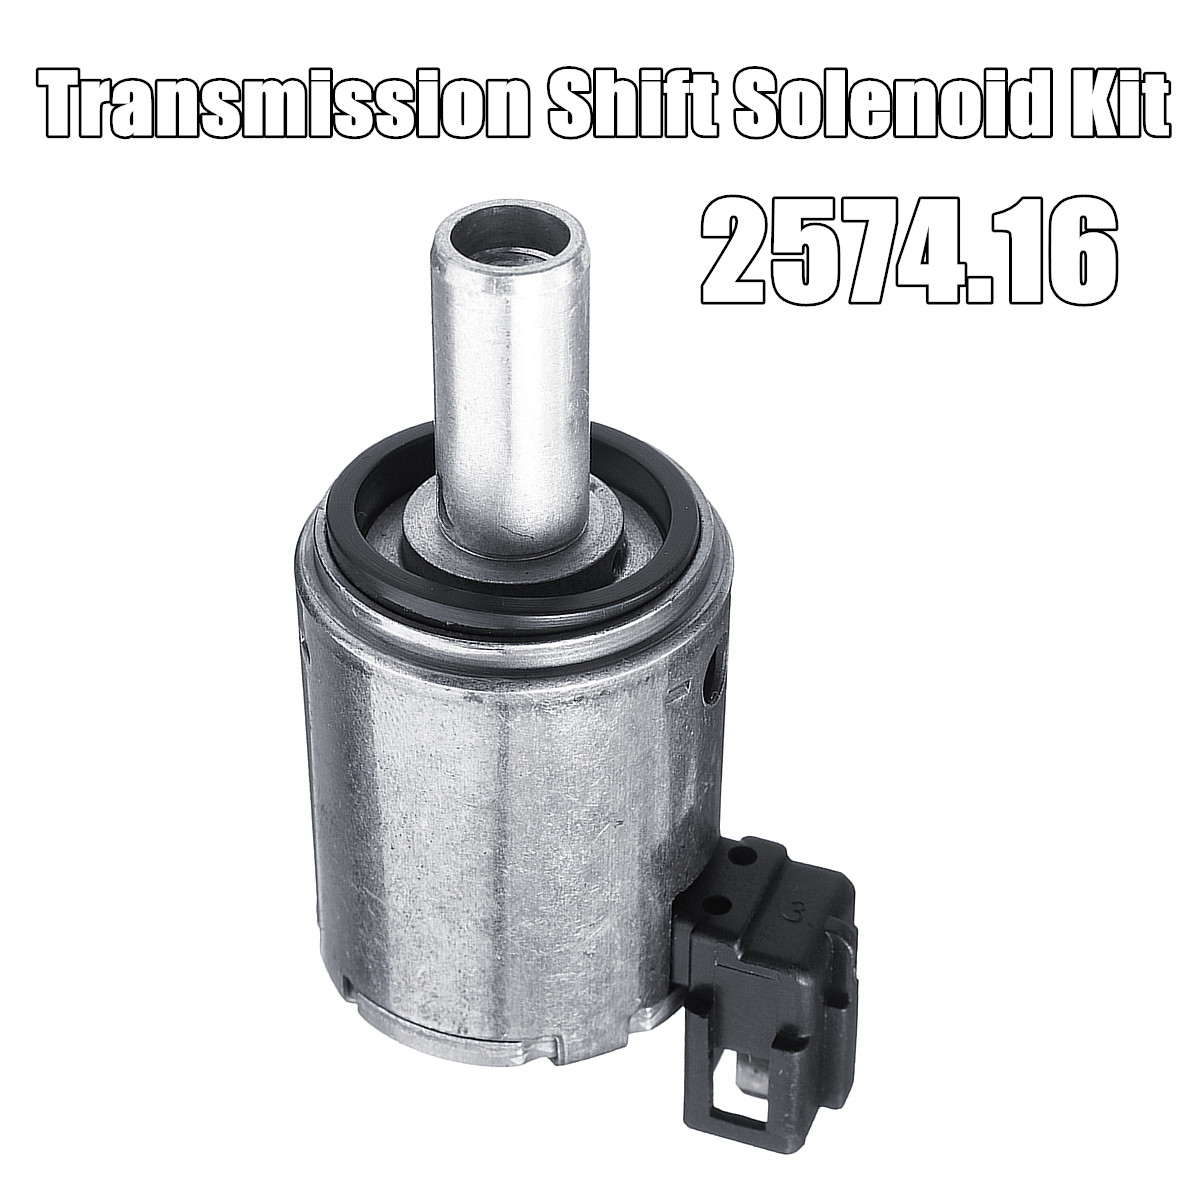 small resolution of transmission shift solenoid valve 2574 16 for citroen peugeot renault al4 dpo 36x26x59mm solenoid kit auto replacement parts best seller july 2019